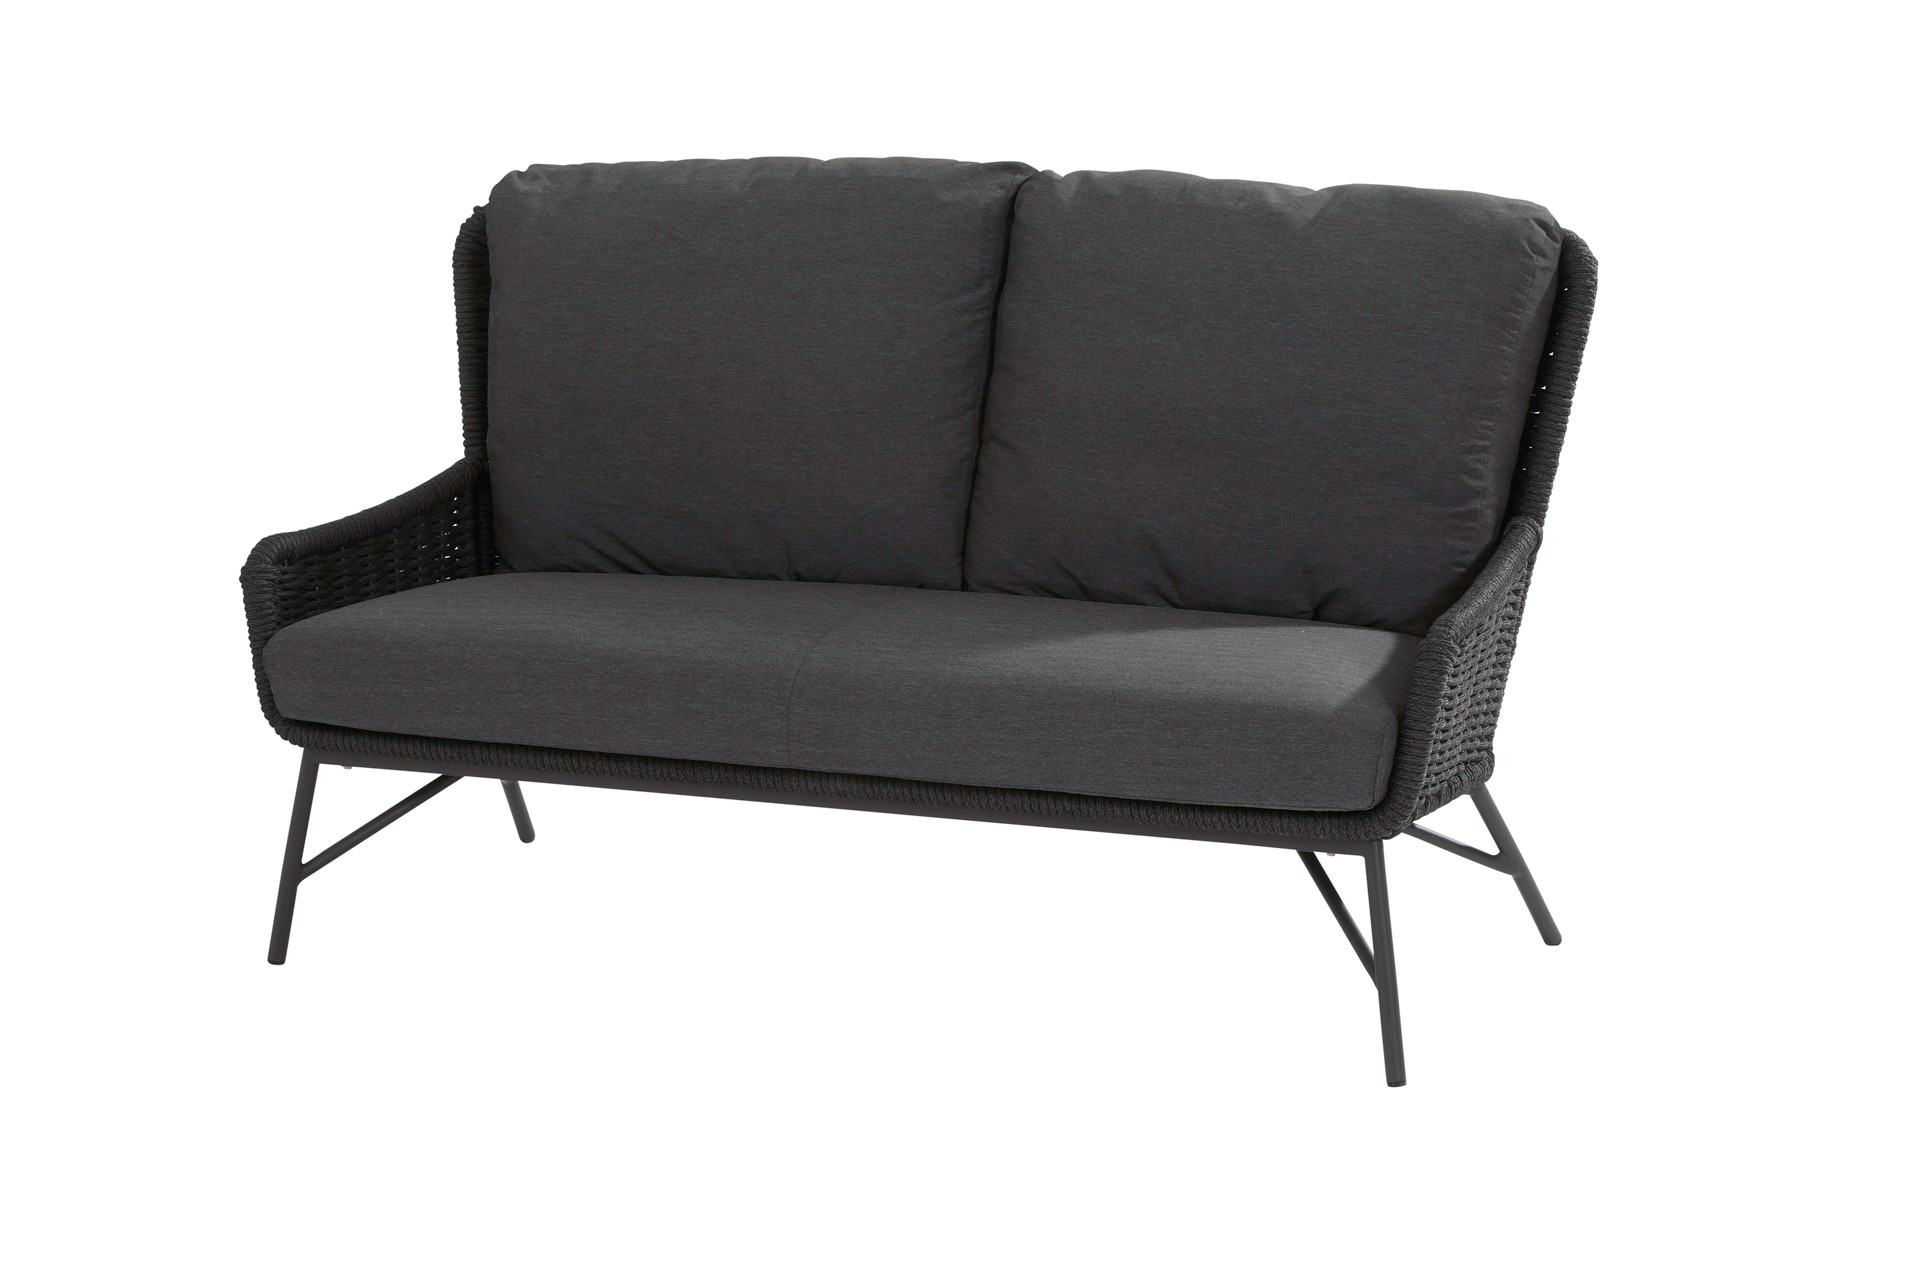 Wing 2.5 seater bench with 3 cushions